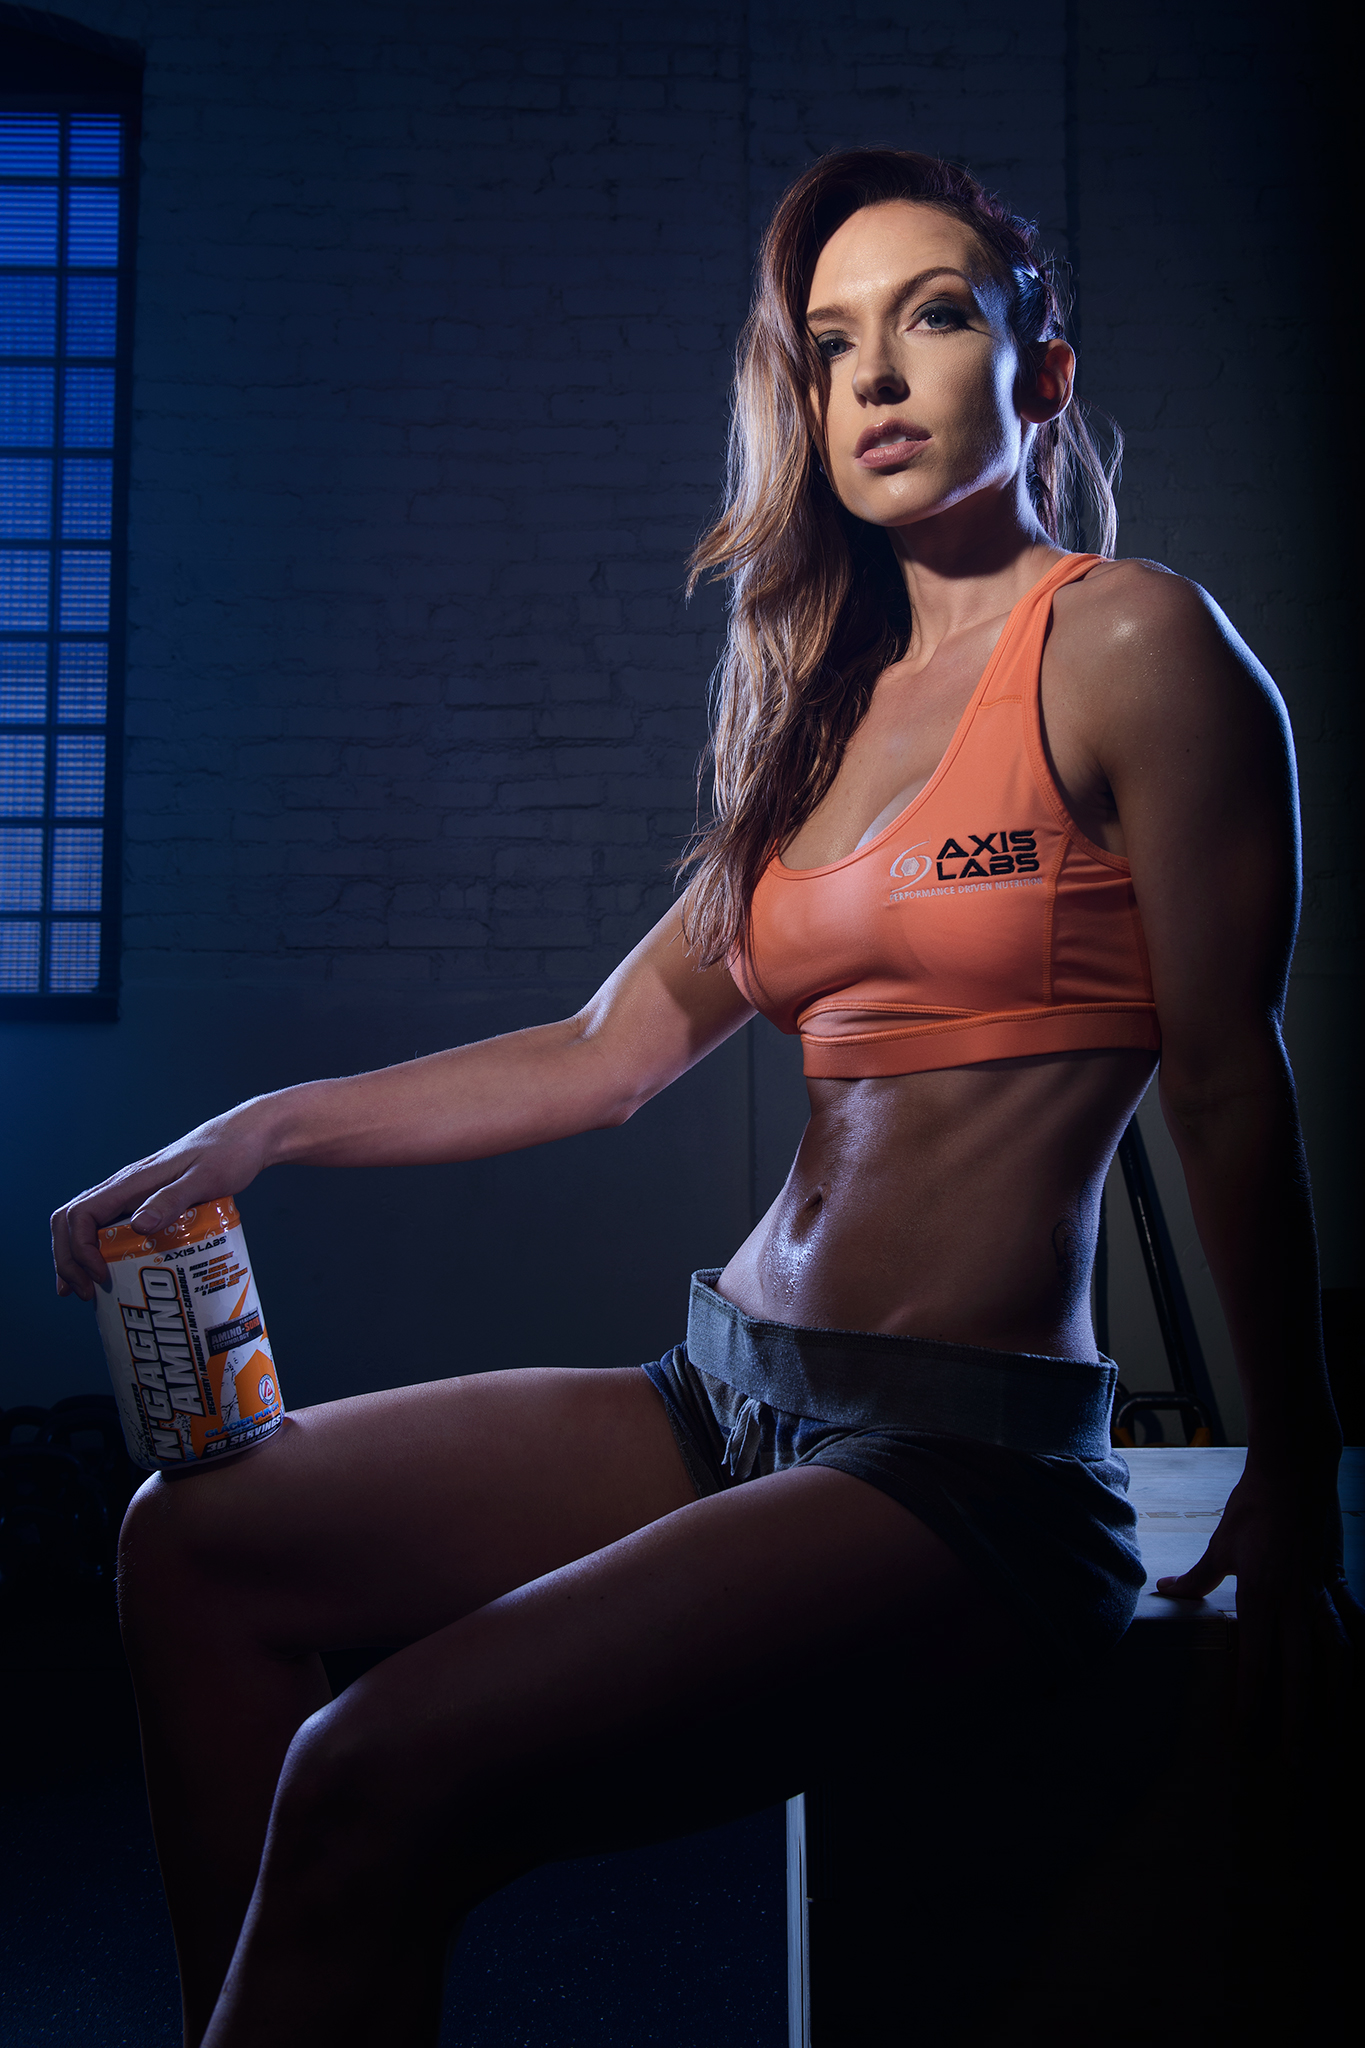 Advertising image for Axis Labs N-Gage Amino with a fitness model rep